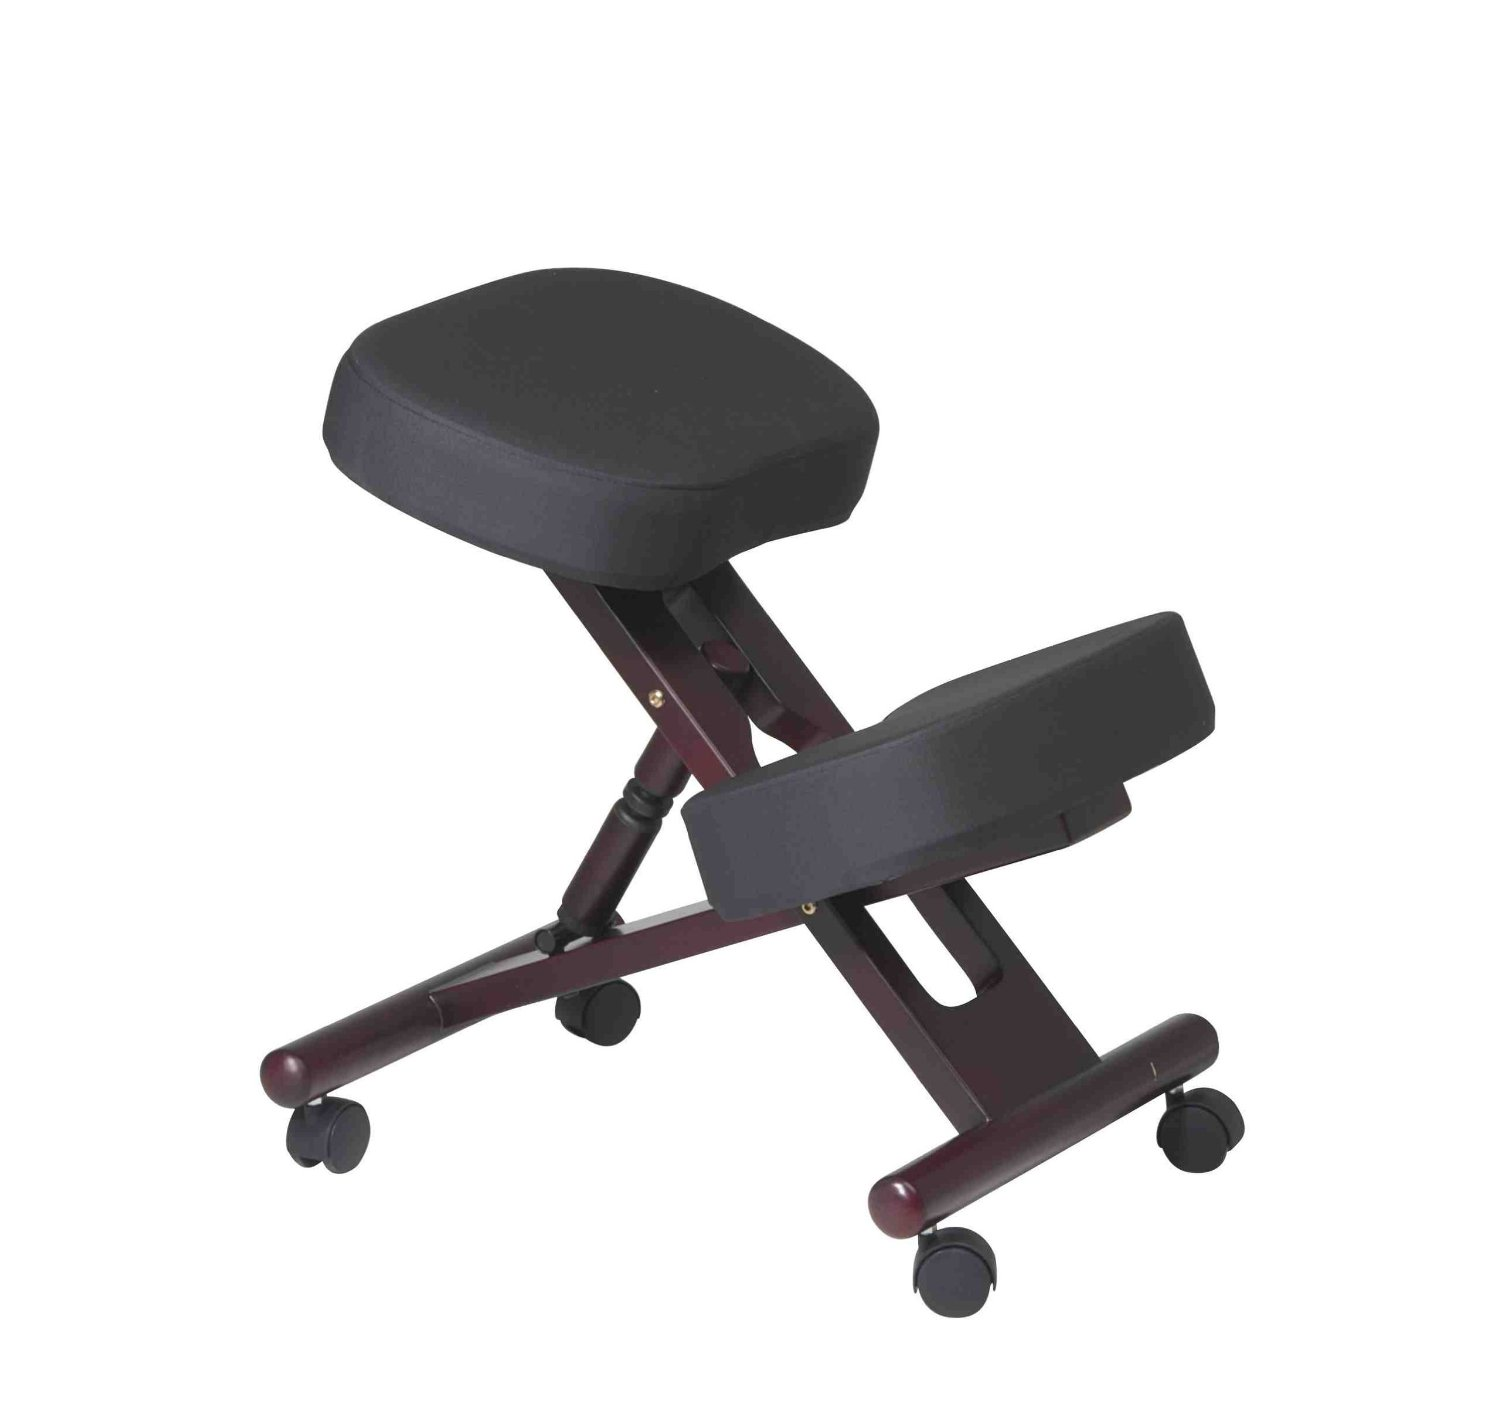 Whats The Best Knee Chair? Read Our Top 5 Reviews Report